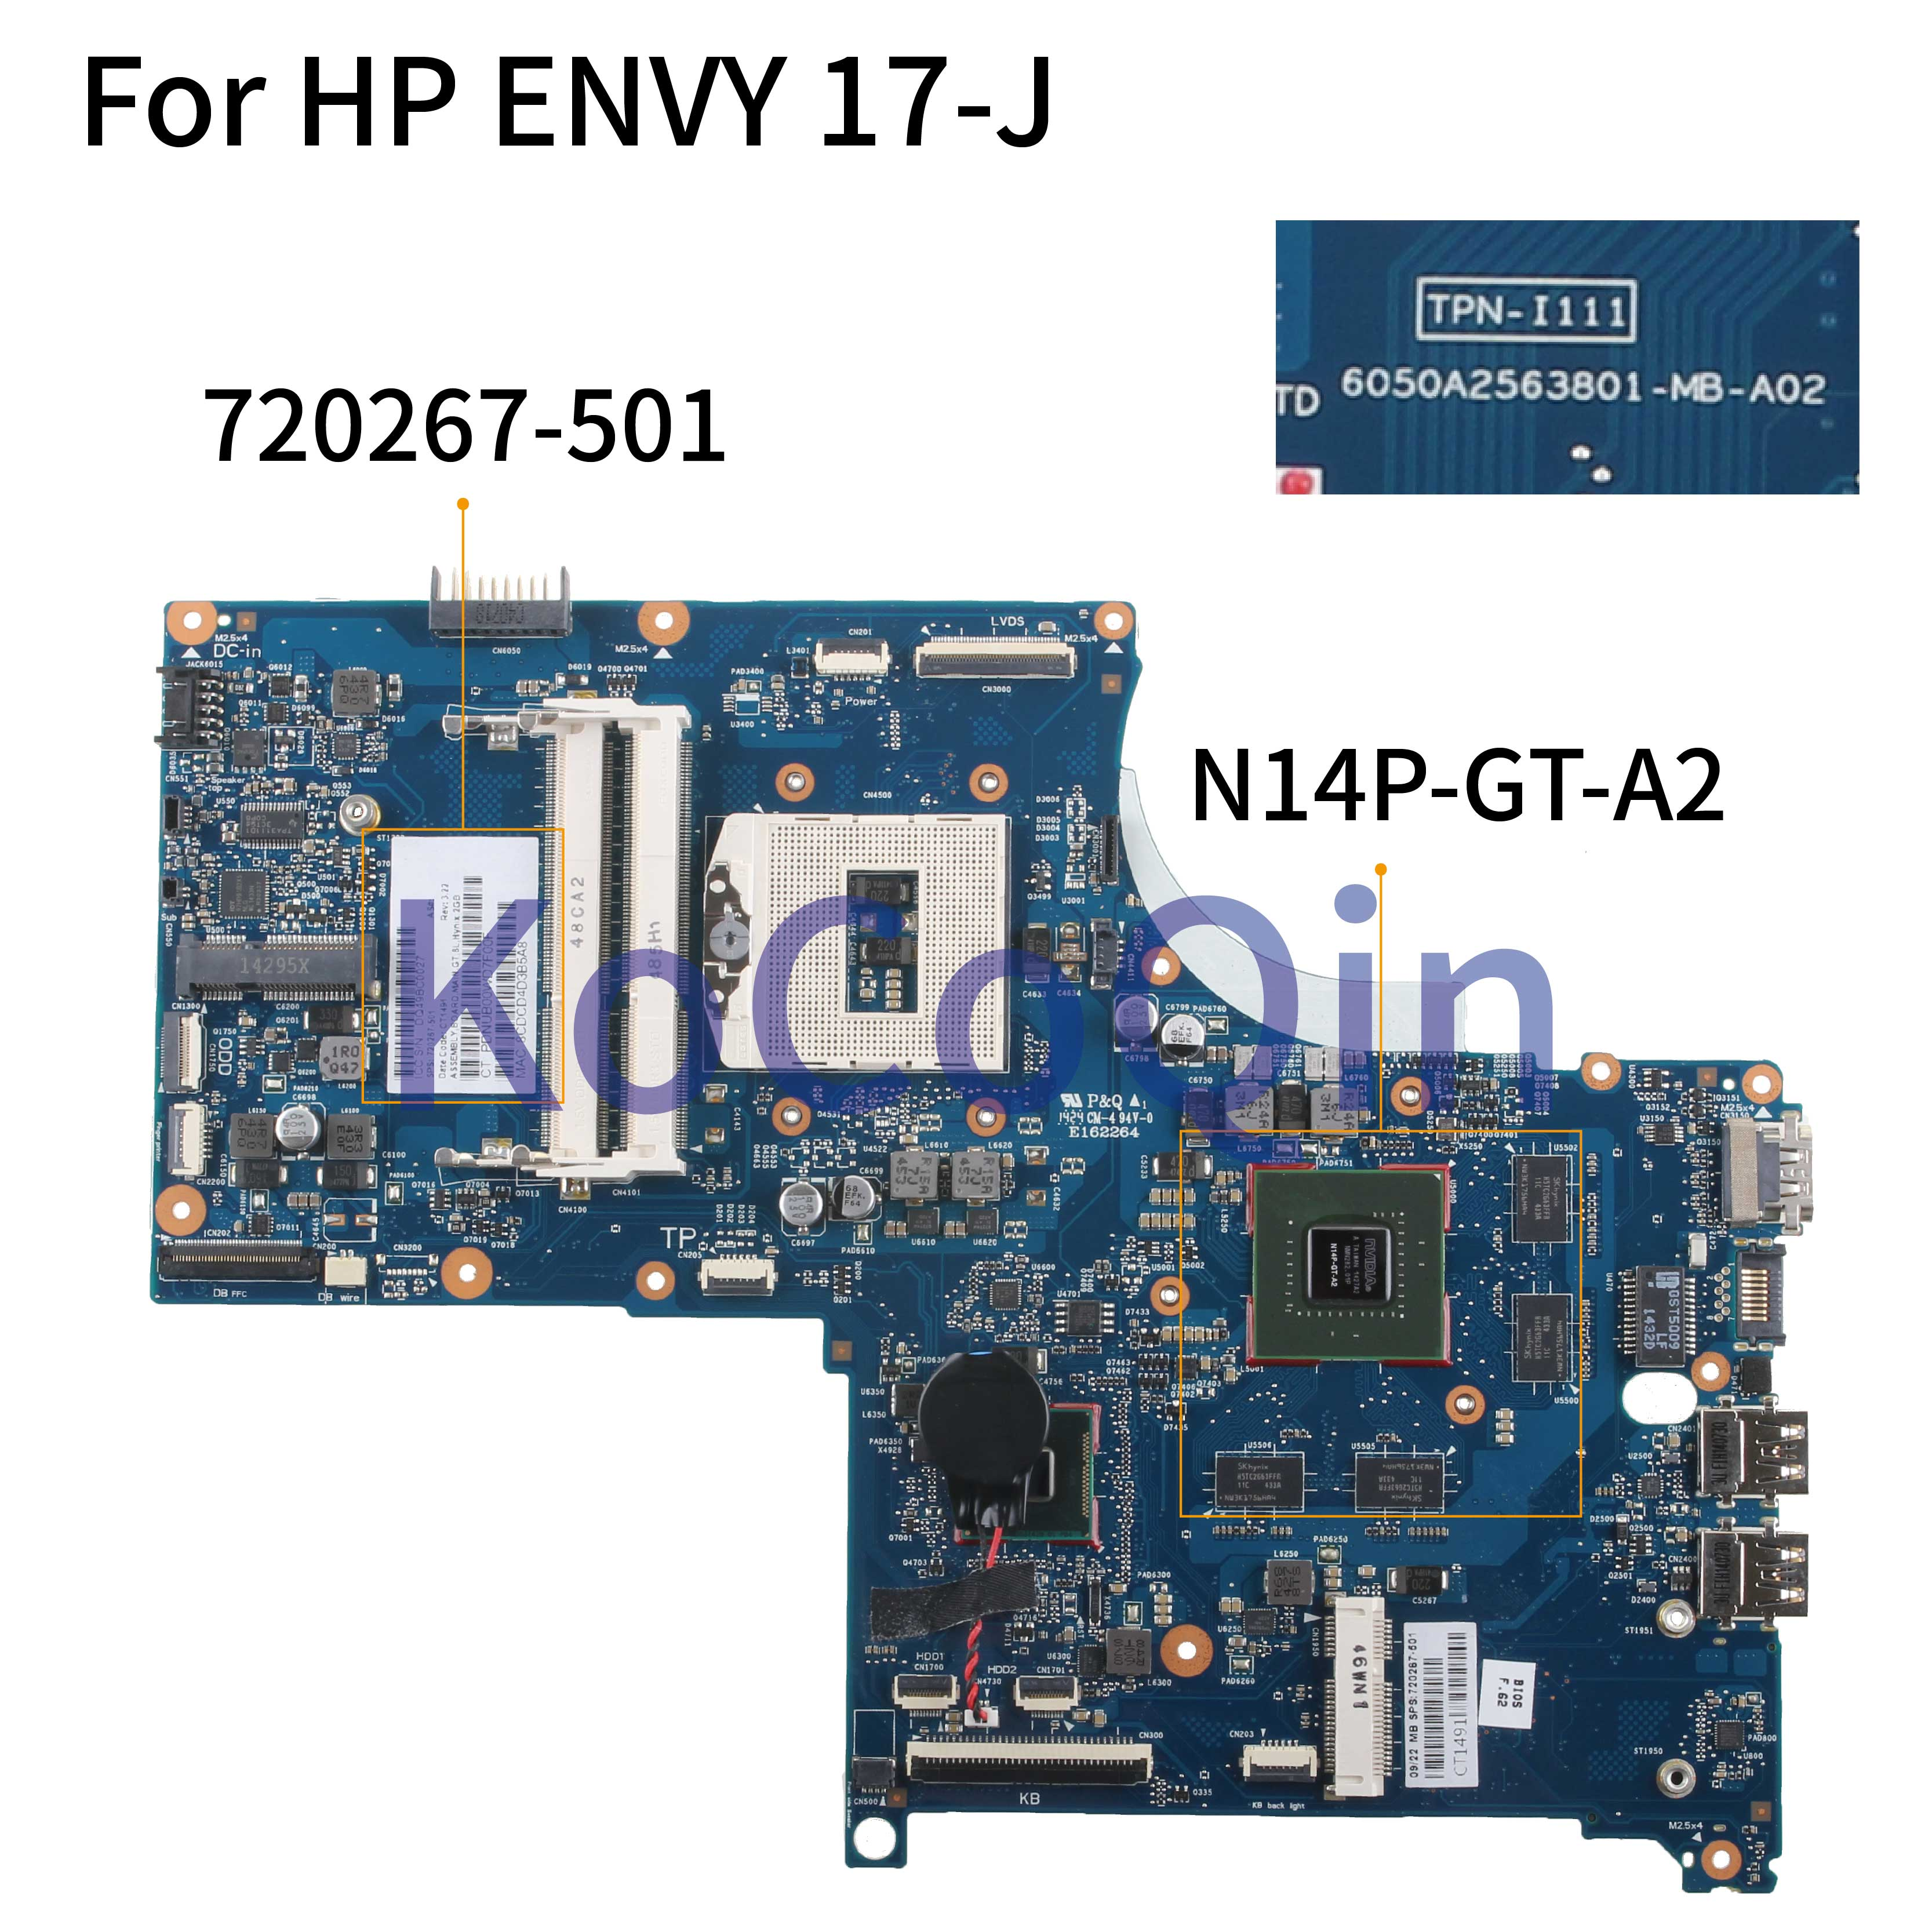 KoCoQin Laptop Motherboard For HP ENVY 17-J M7-J 17T-J HM87 N14P-GT-A2 2G Mainboard 720267-001 720267-501 6050A2563801-MB-A02